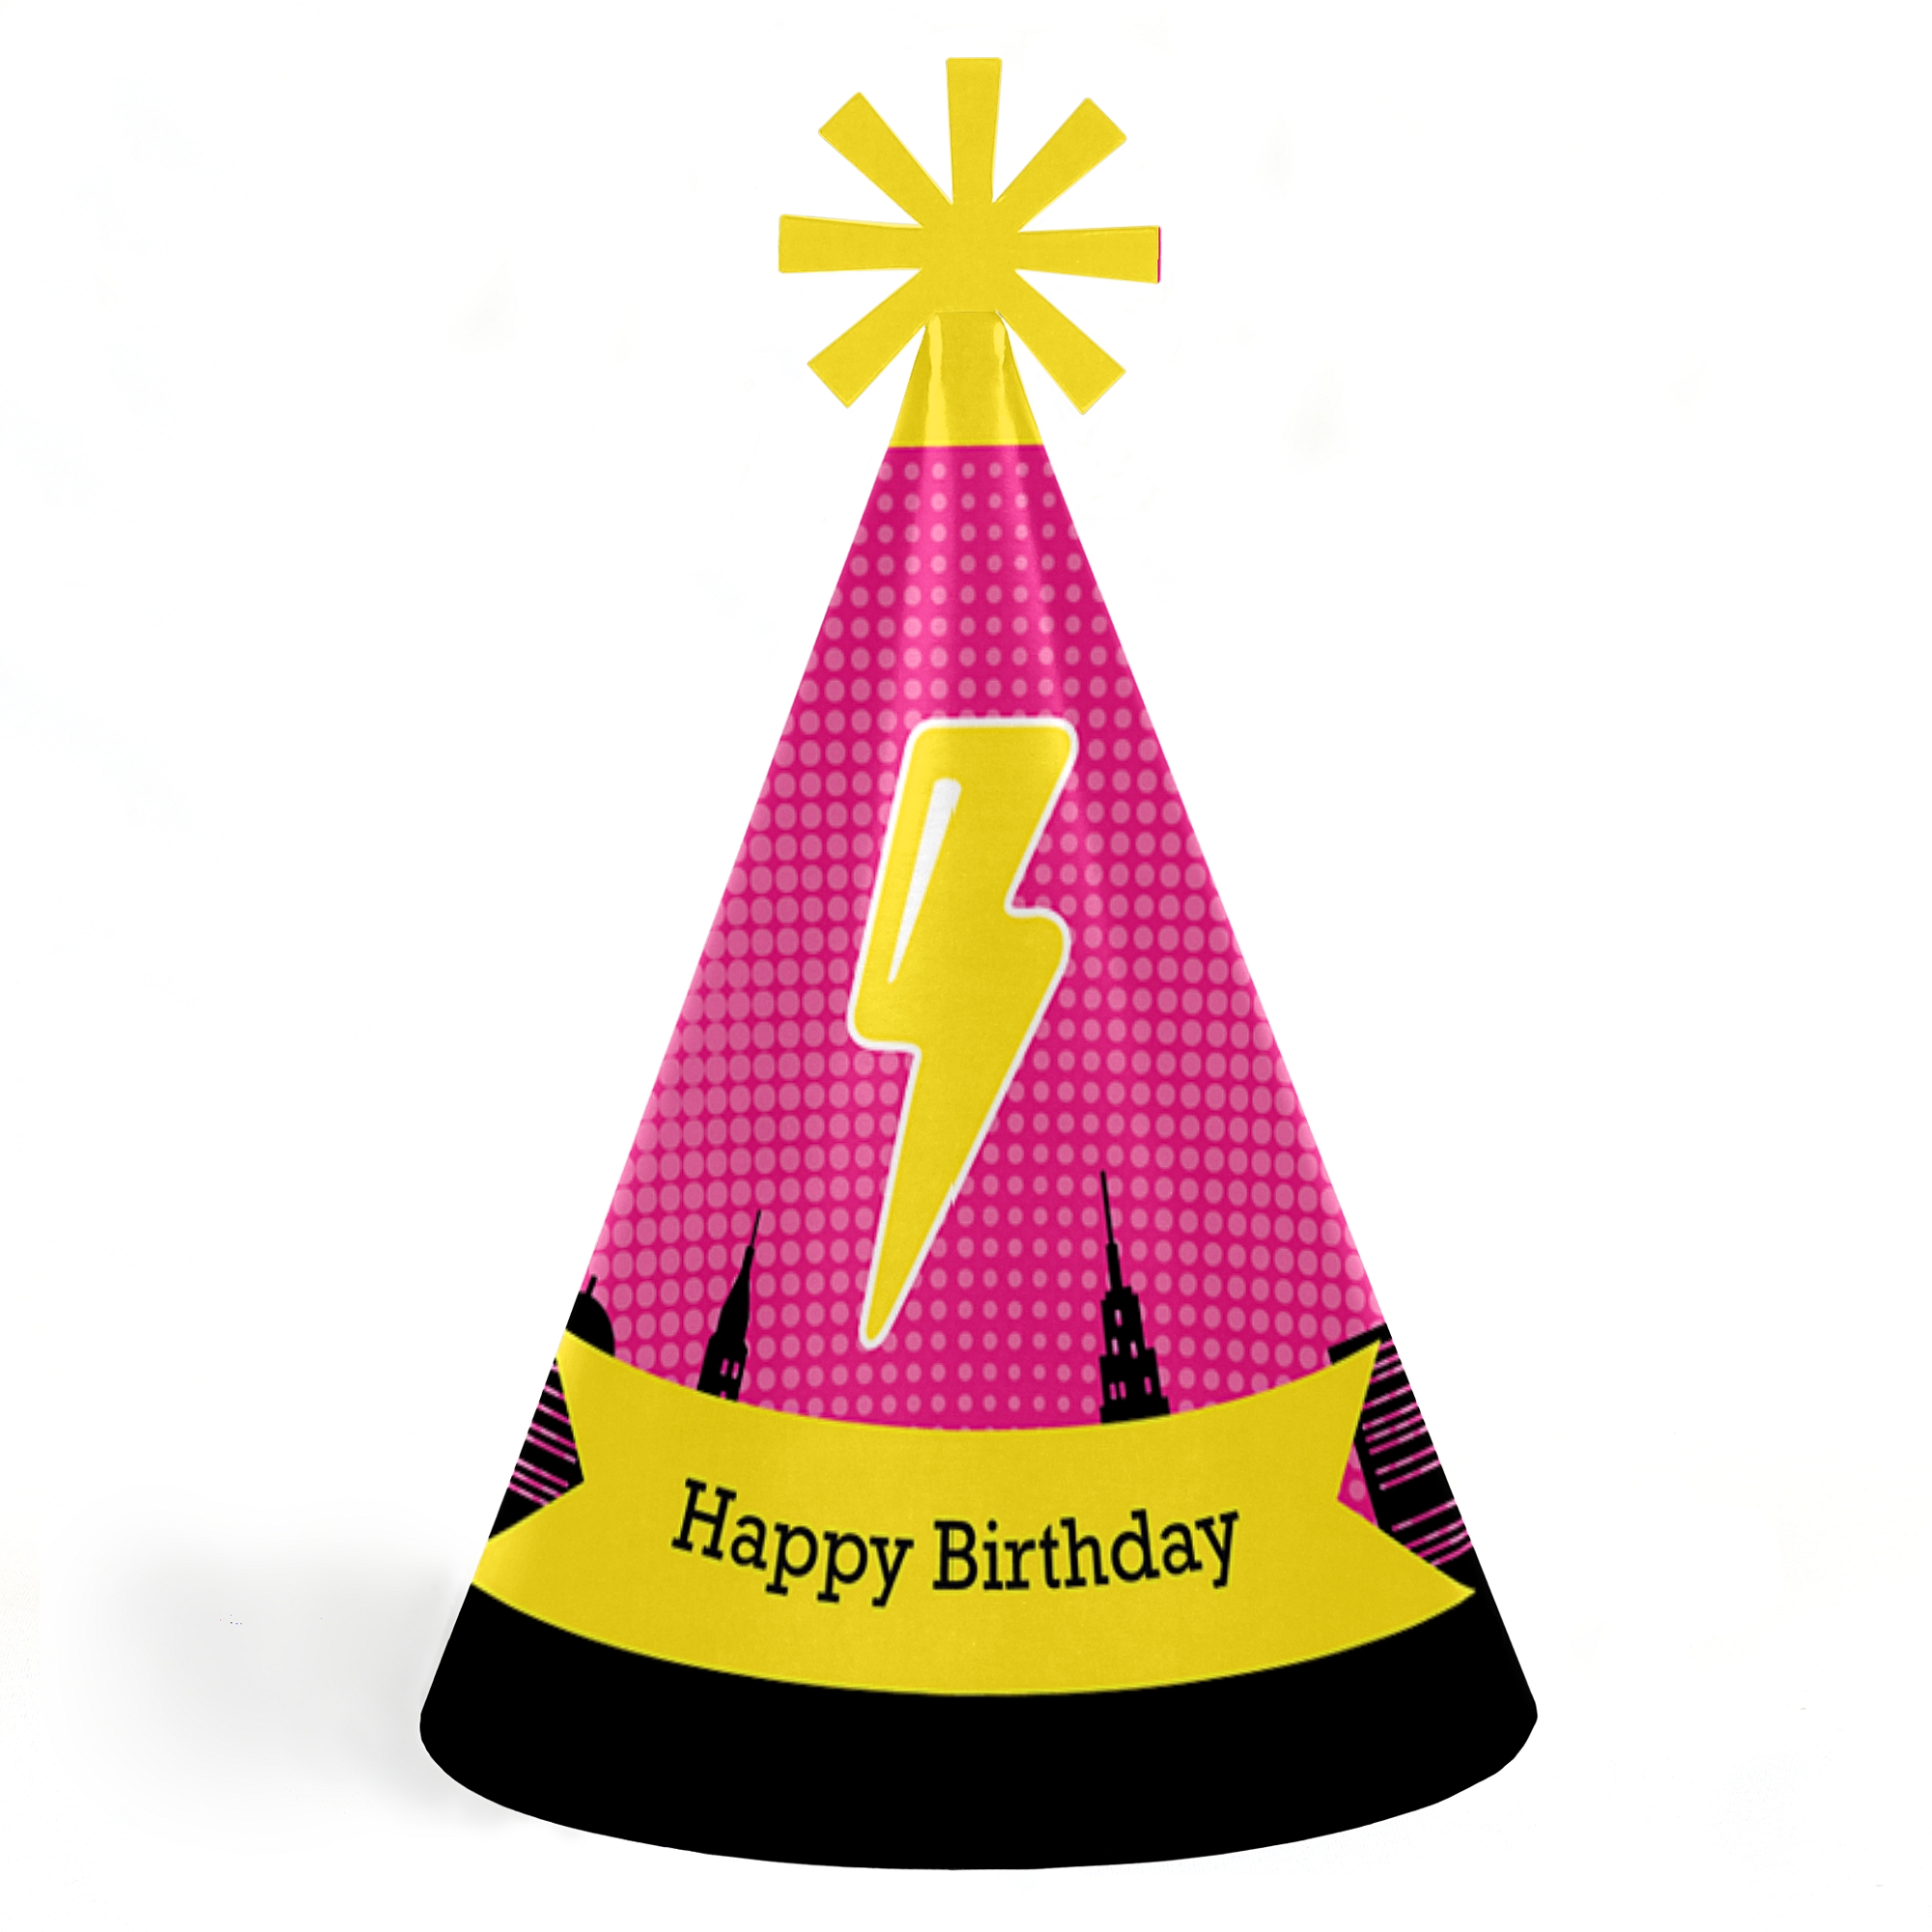 BAM! Girl Superhero - Cone Happy Birthday Party Hats for Kids and Adults - Set of 8 (Standard Size)